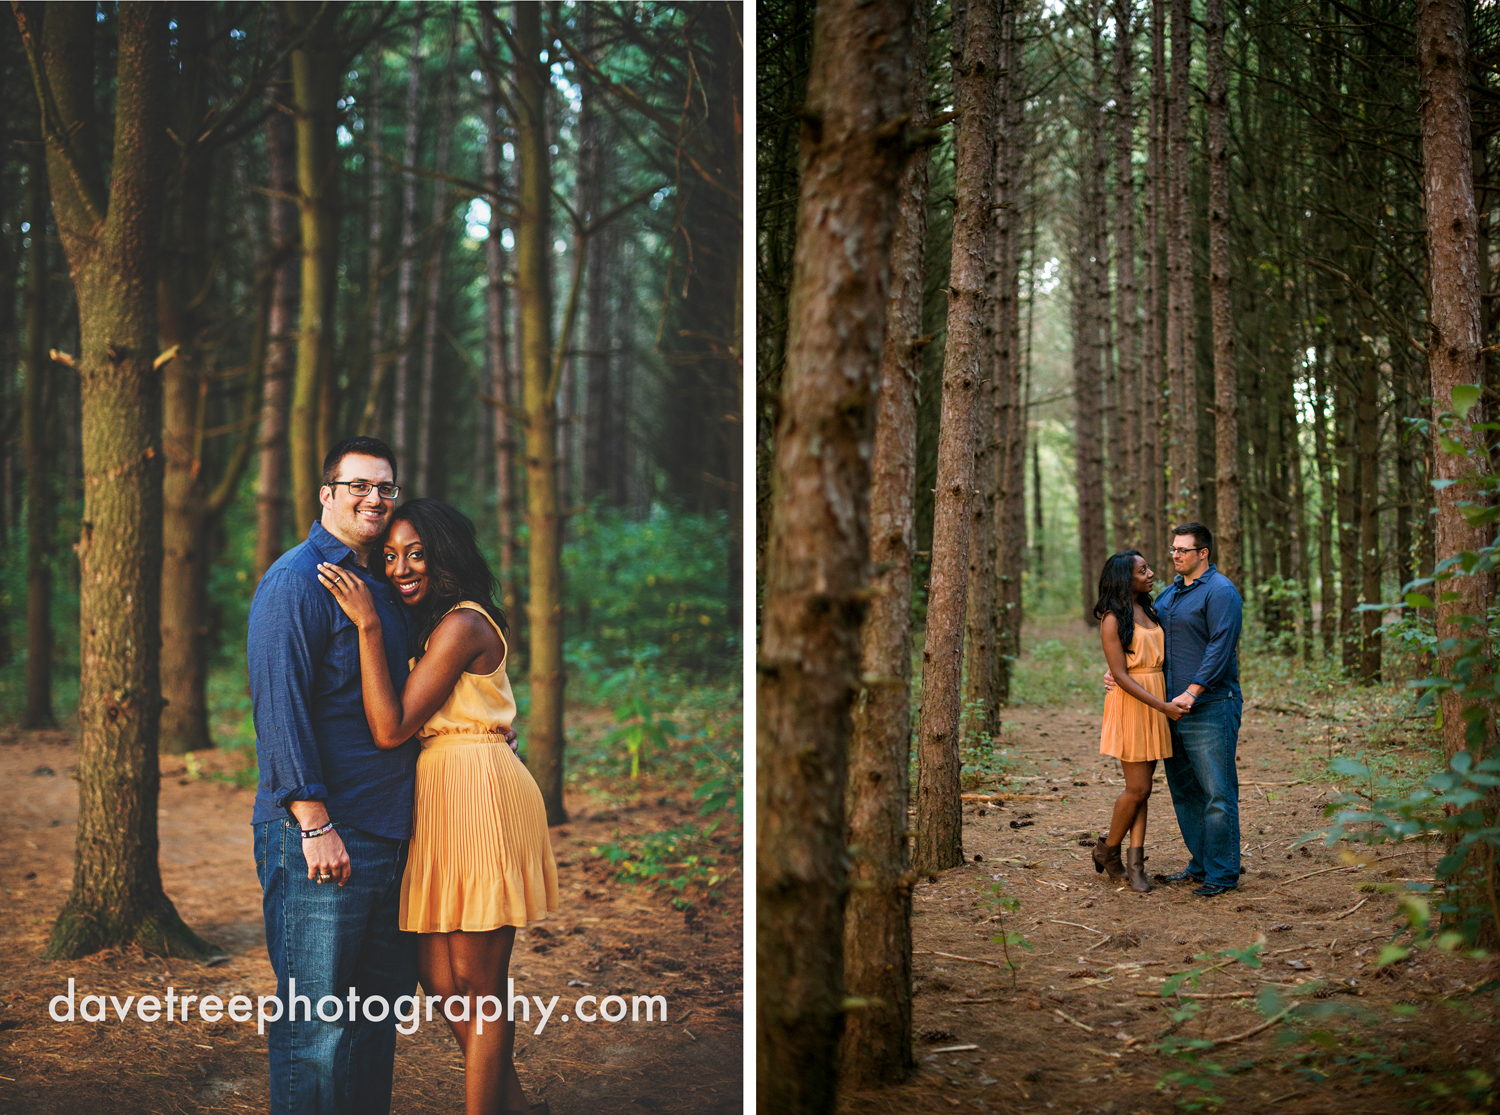 kalamazoo_wedding_photographer_kalamazoo_engagement_photographer_01.jpg